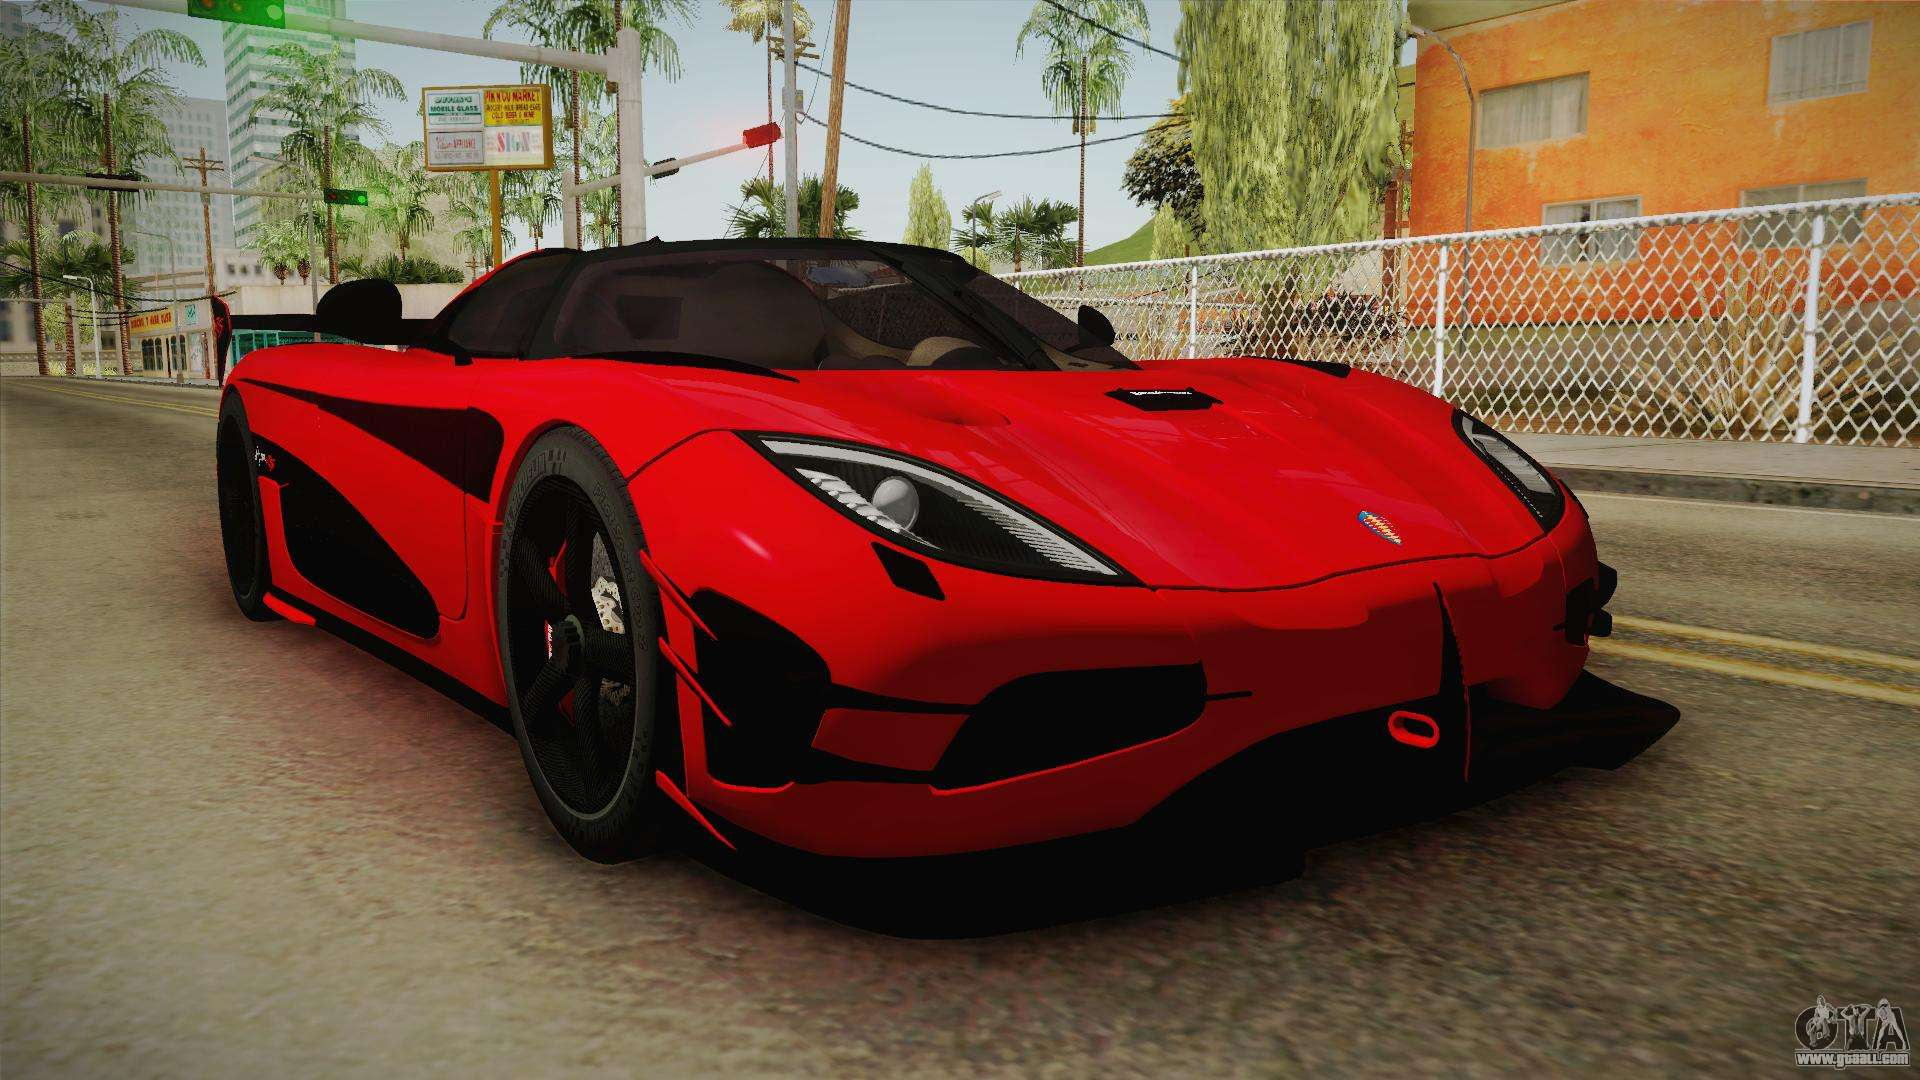 koenigsegg mod gta 5 with 94574 Koenigsegg Agera Rs V2 on 42710 Koenigsegg One1 Epm additionally 1936 Ford Pickup Ratrod Style together with Asphalt 8 Traffic Pack Final Version together with 42710 Koenigsegg One1 Epm furthermore 64458 Nfs Rivals Koenigsegg Agera R Enforcer.